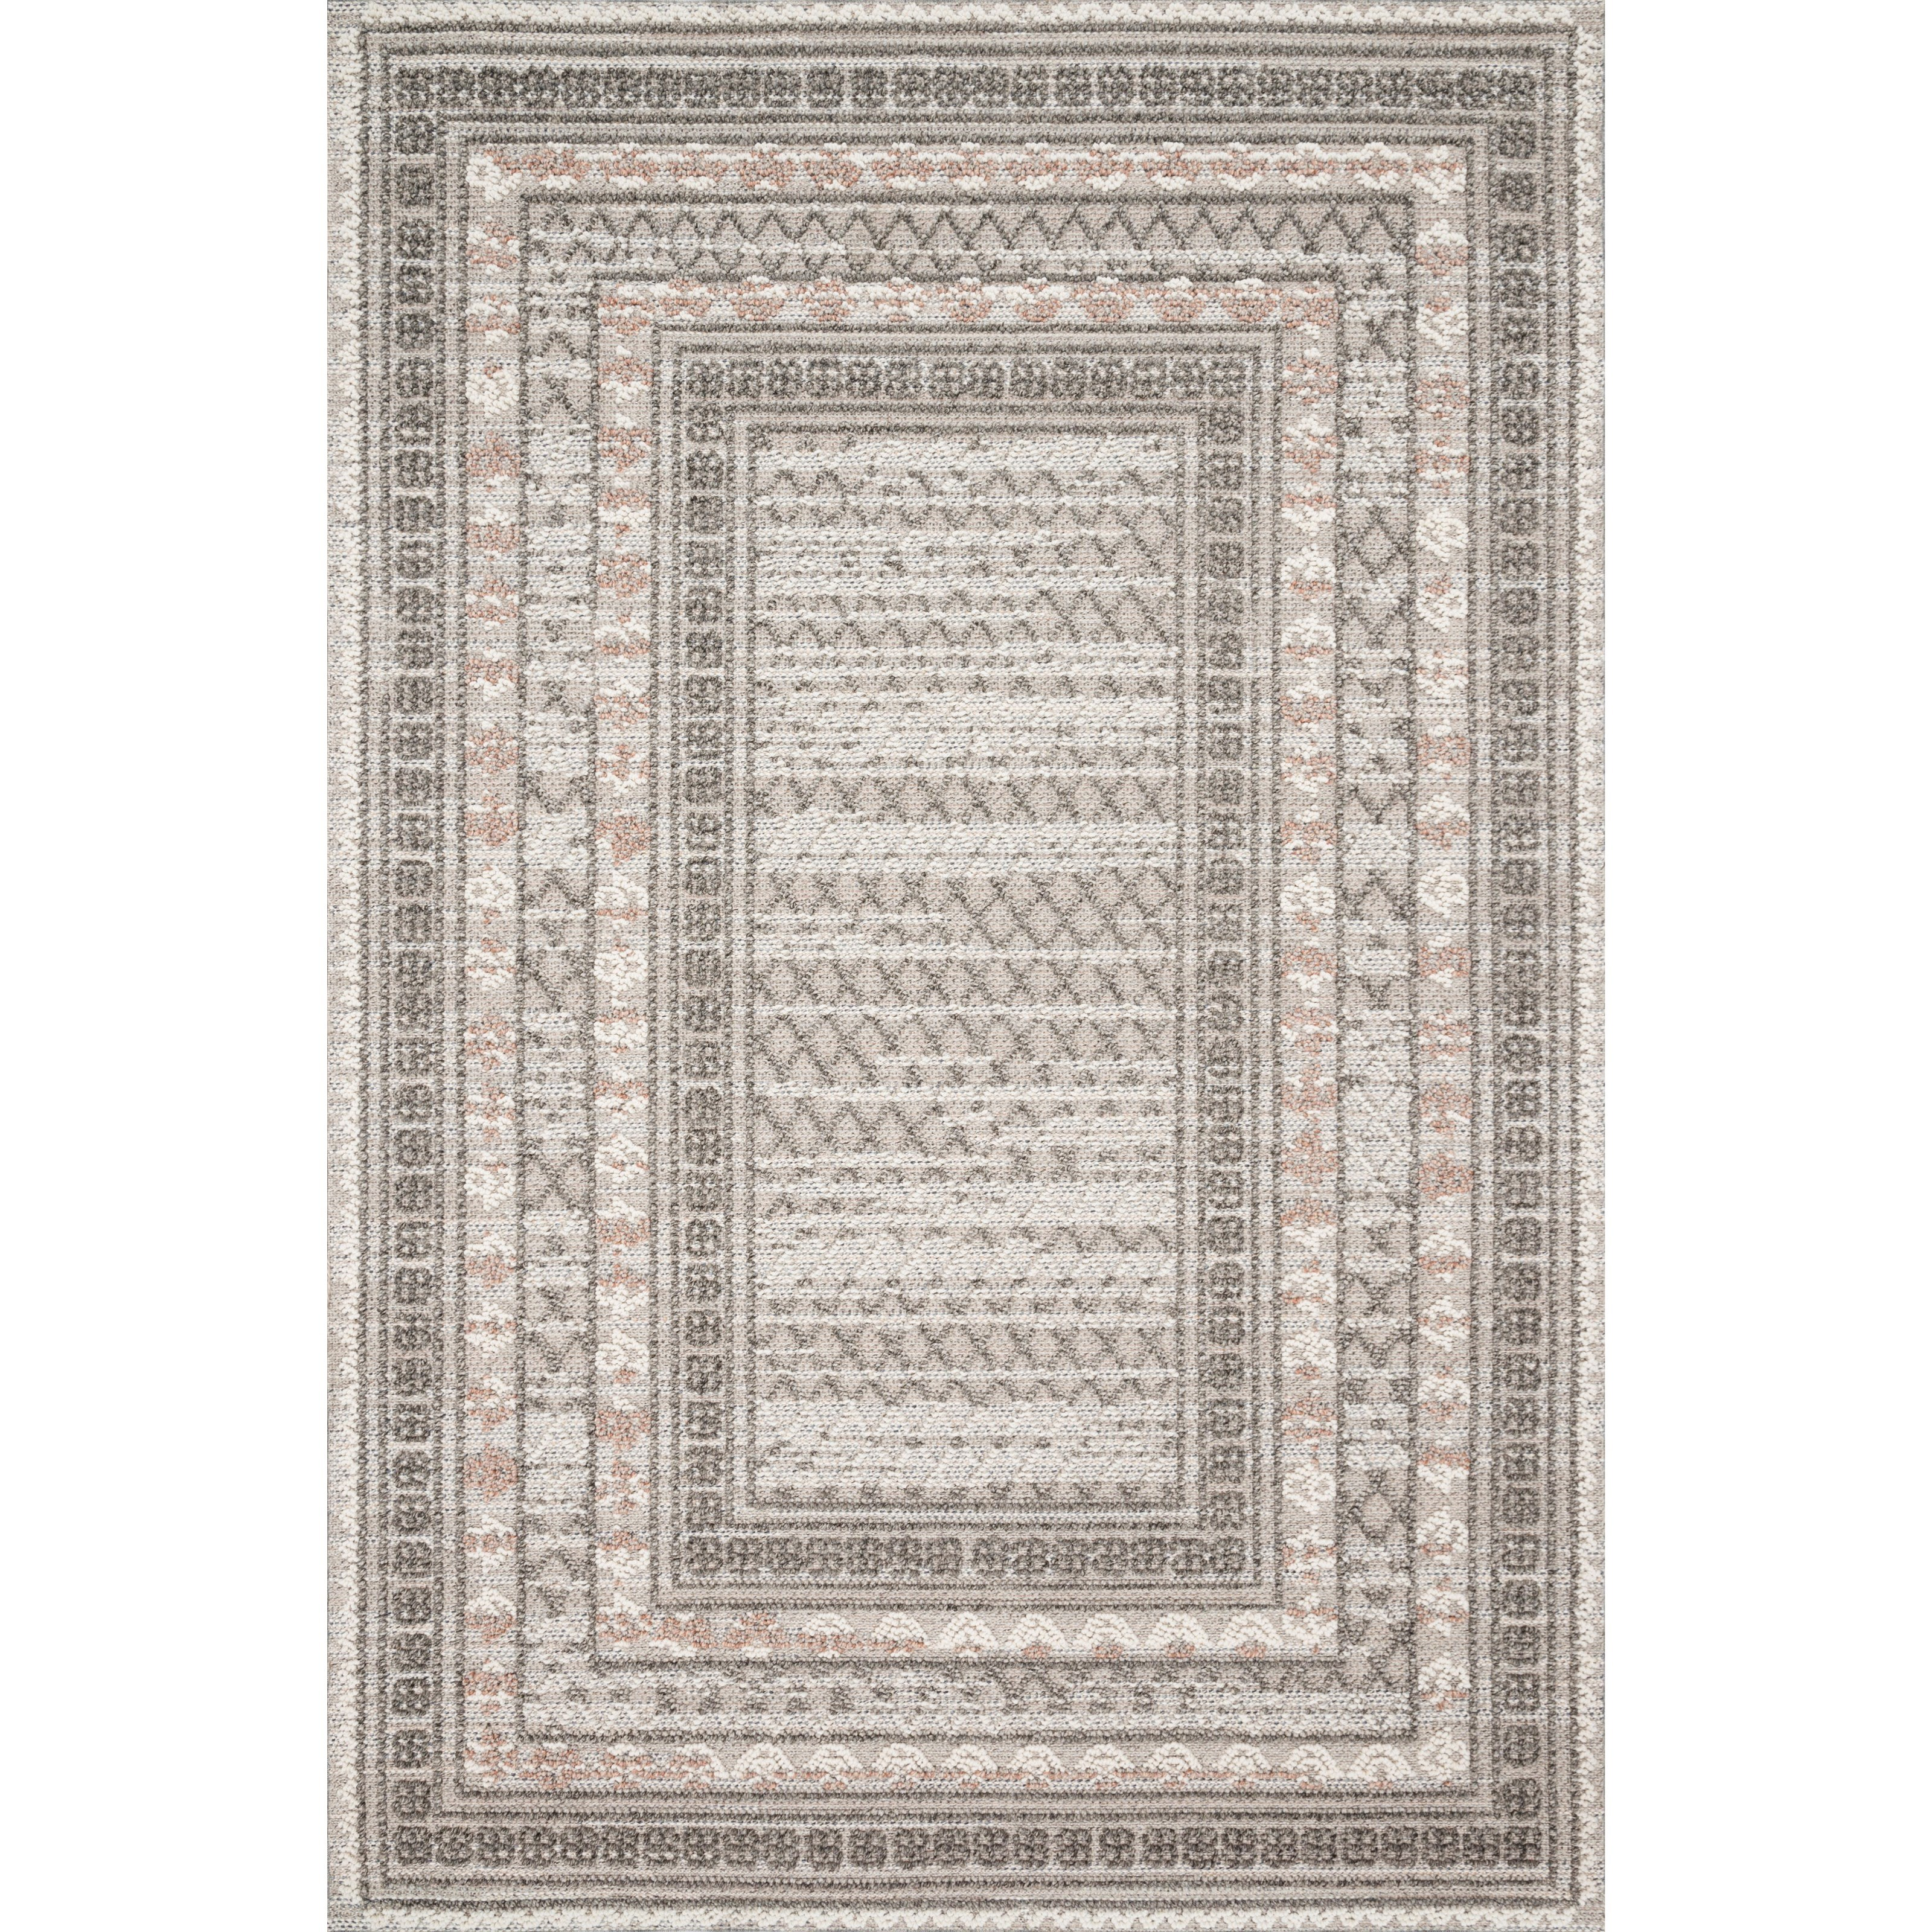 """Cole 4'0"""" x 5'9"""" Grey / Multi Rug by Loloi Rugs at Virginia Furniture Market"""